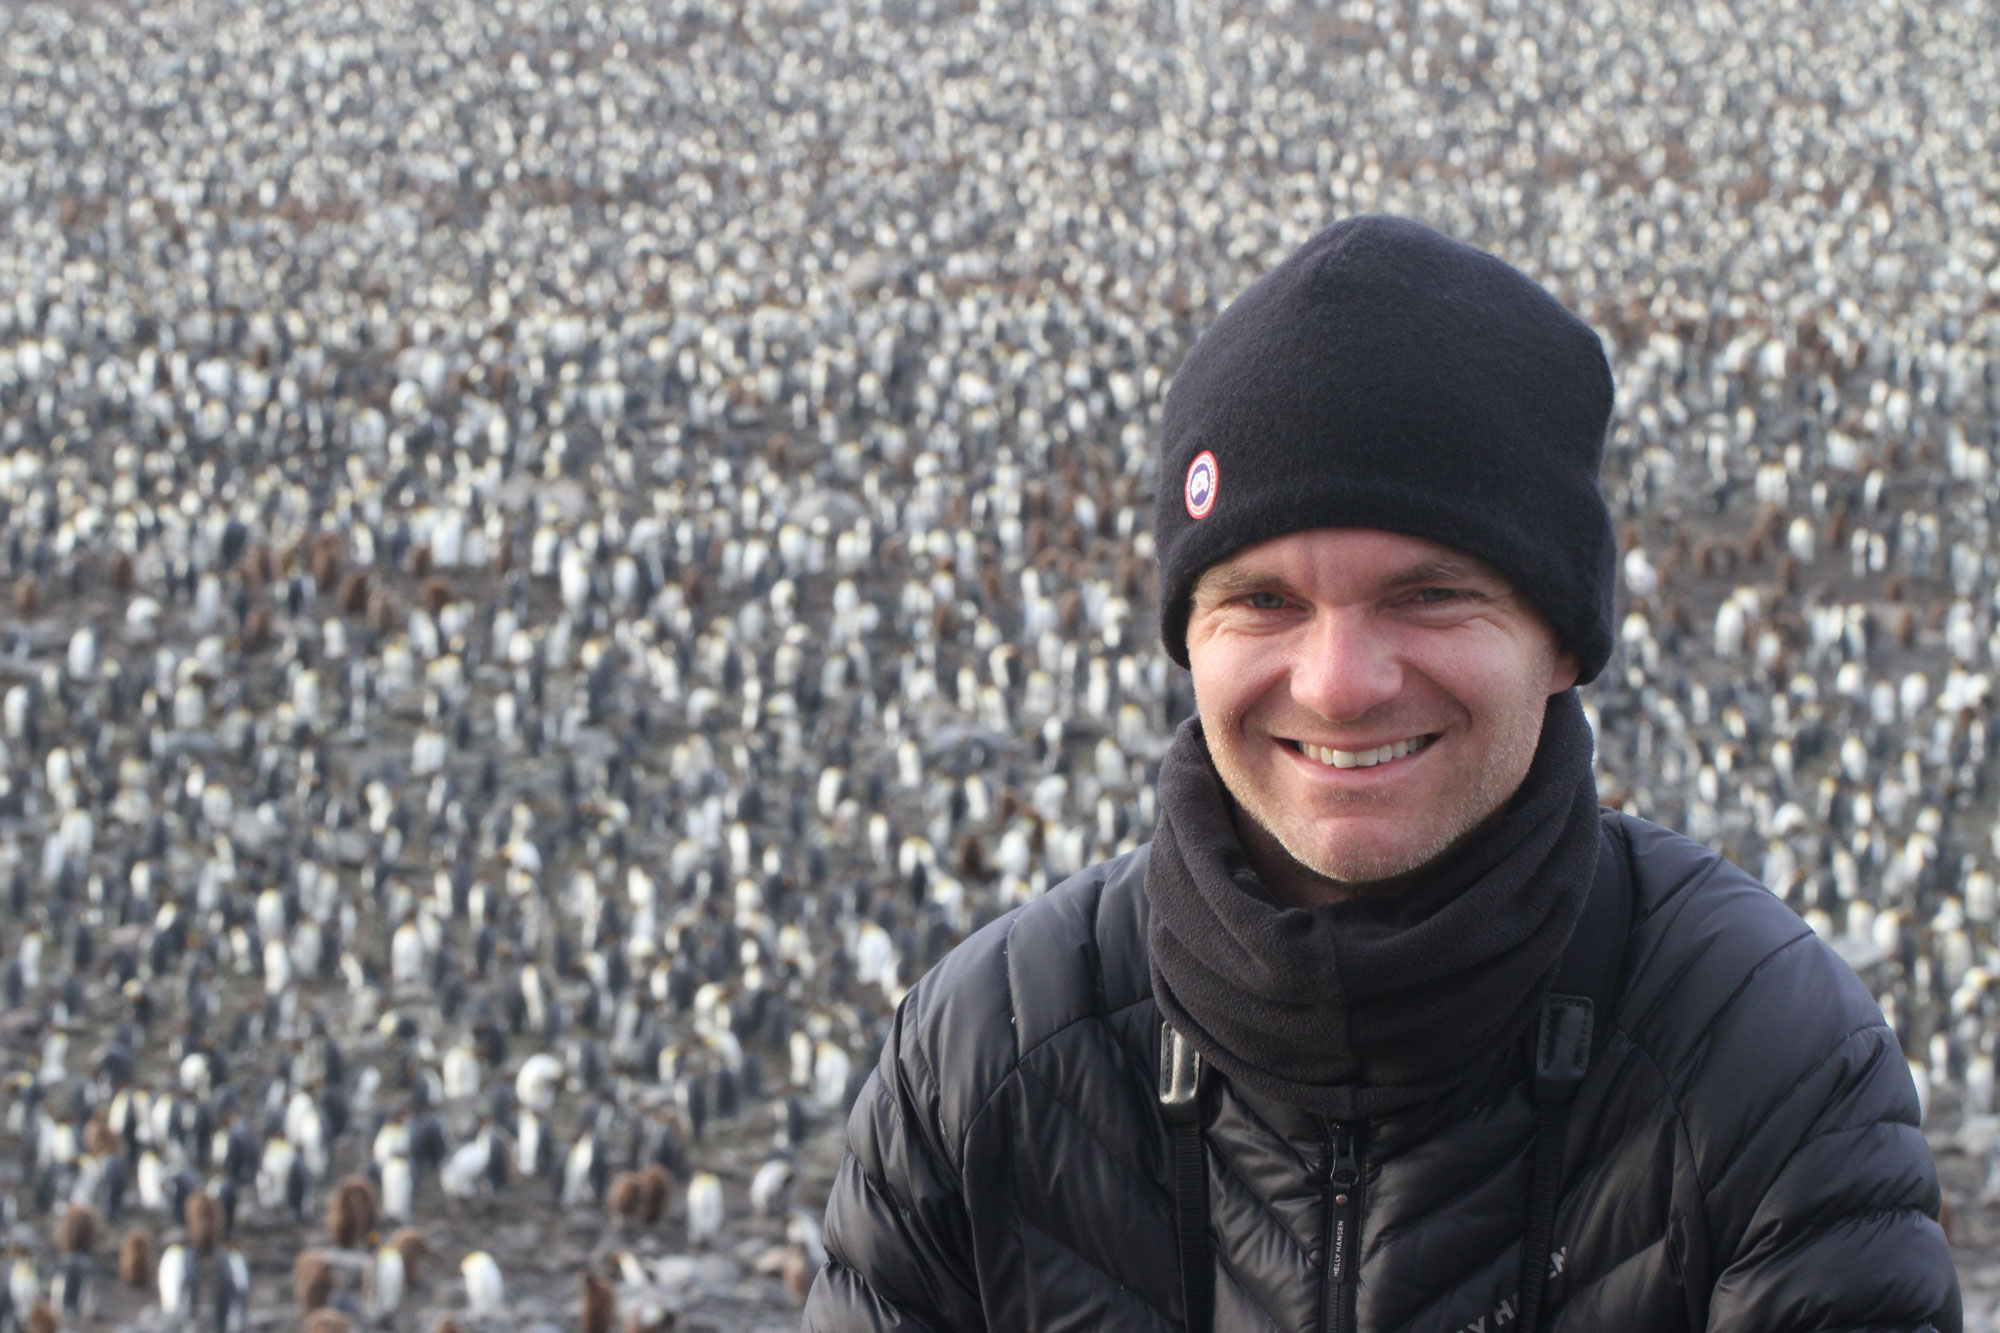 Ornithologist Noah Strycker at a King Penguin colony in South Georgia. Photo: Noah Strycker